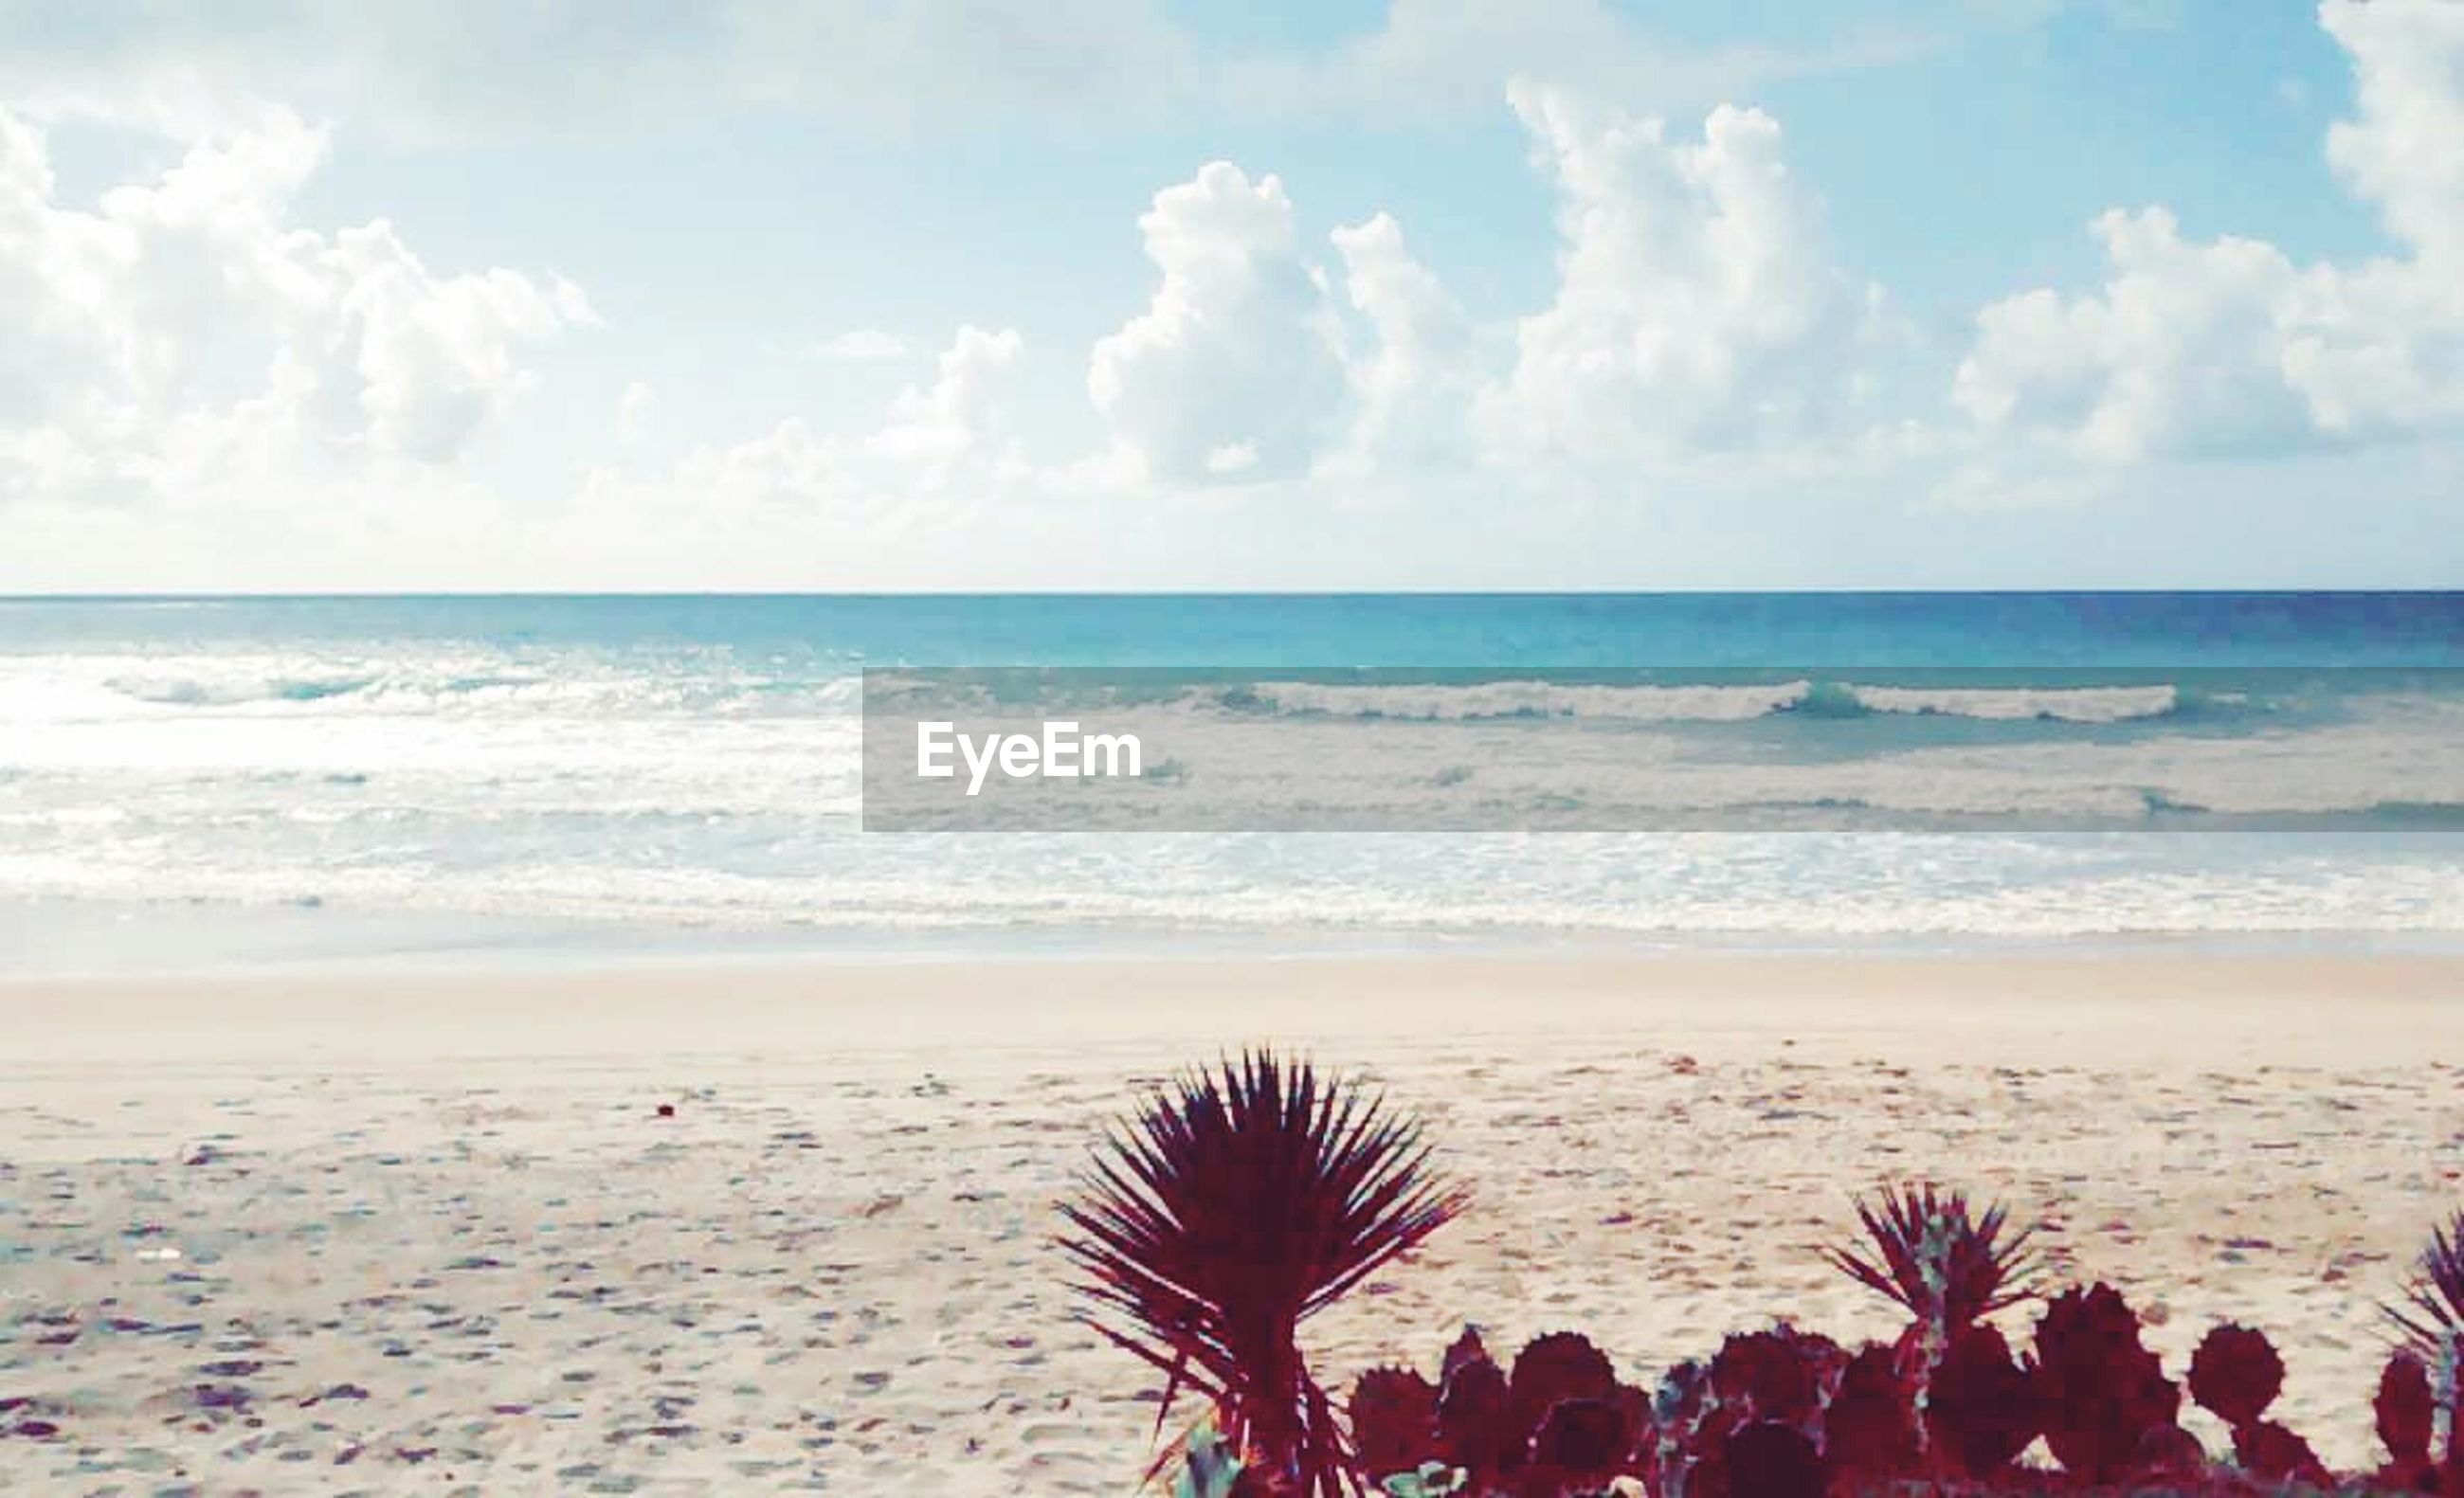 sea, horizon over water, beach, sky, shore, water, beauty in nature, scenics, tranquil scene, sand, tranquility, cloud - sky, nature, palm tree, cloud, vacations, idyllic, incidental people, coastline, outdoors